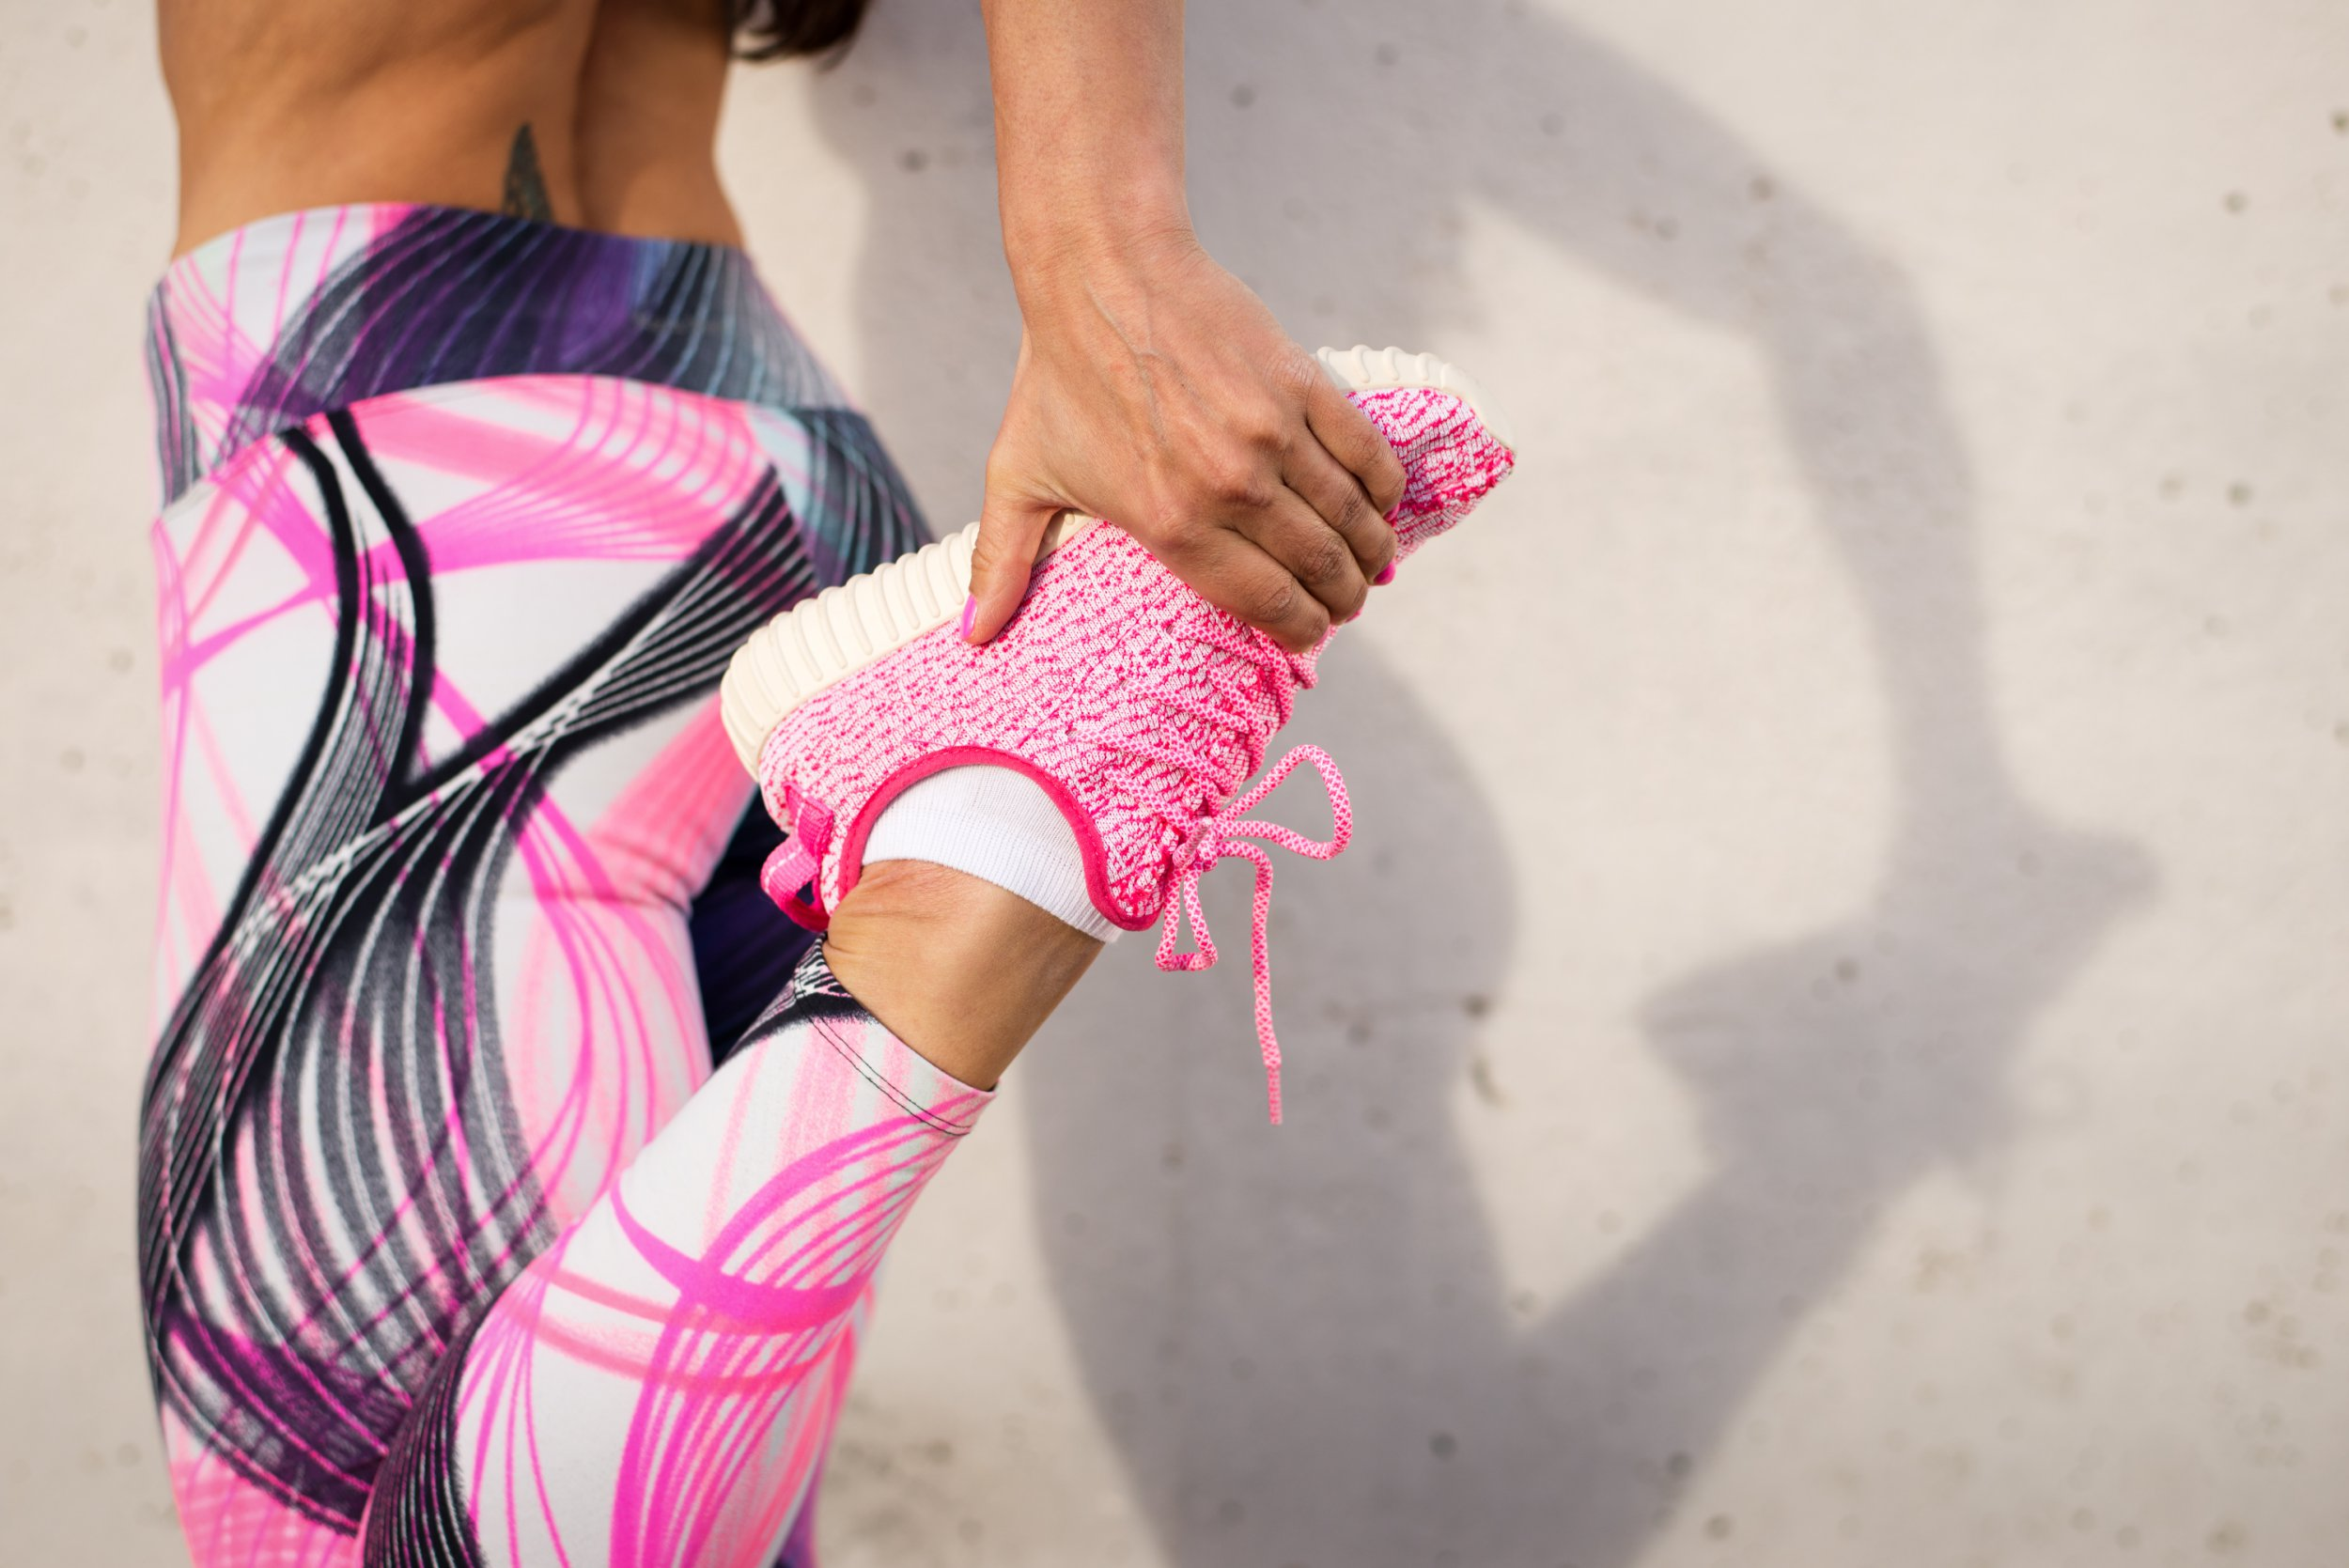 Urban fashion running running sportswear. Female athlete stretching legs after exercising. Healthy lifestyle and sport concept.